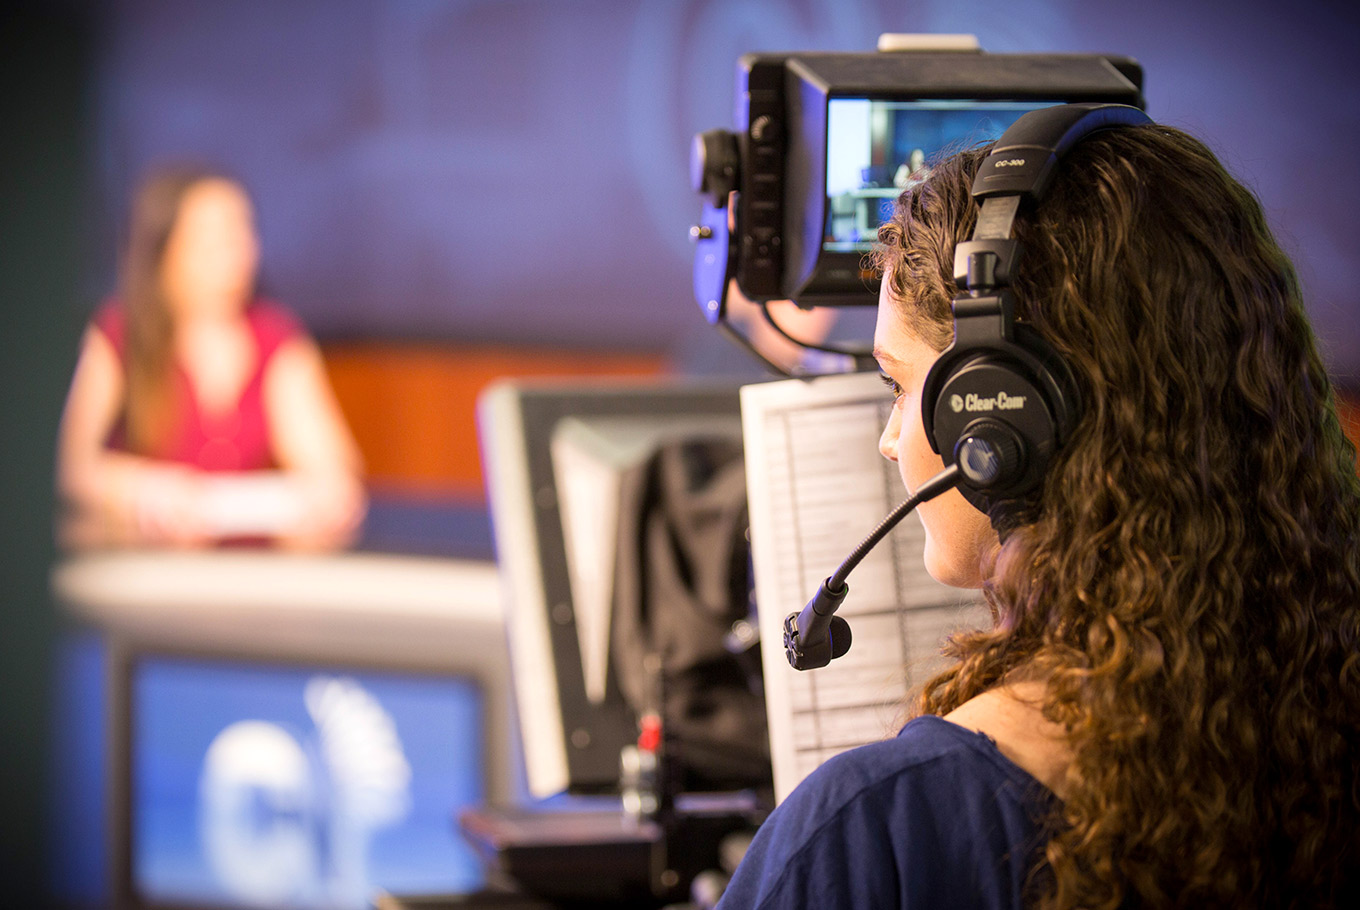 Female student works at a TV station with a headset on.